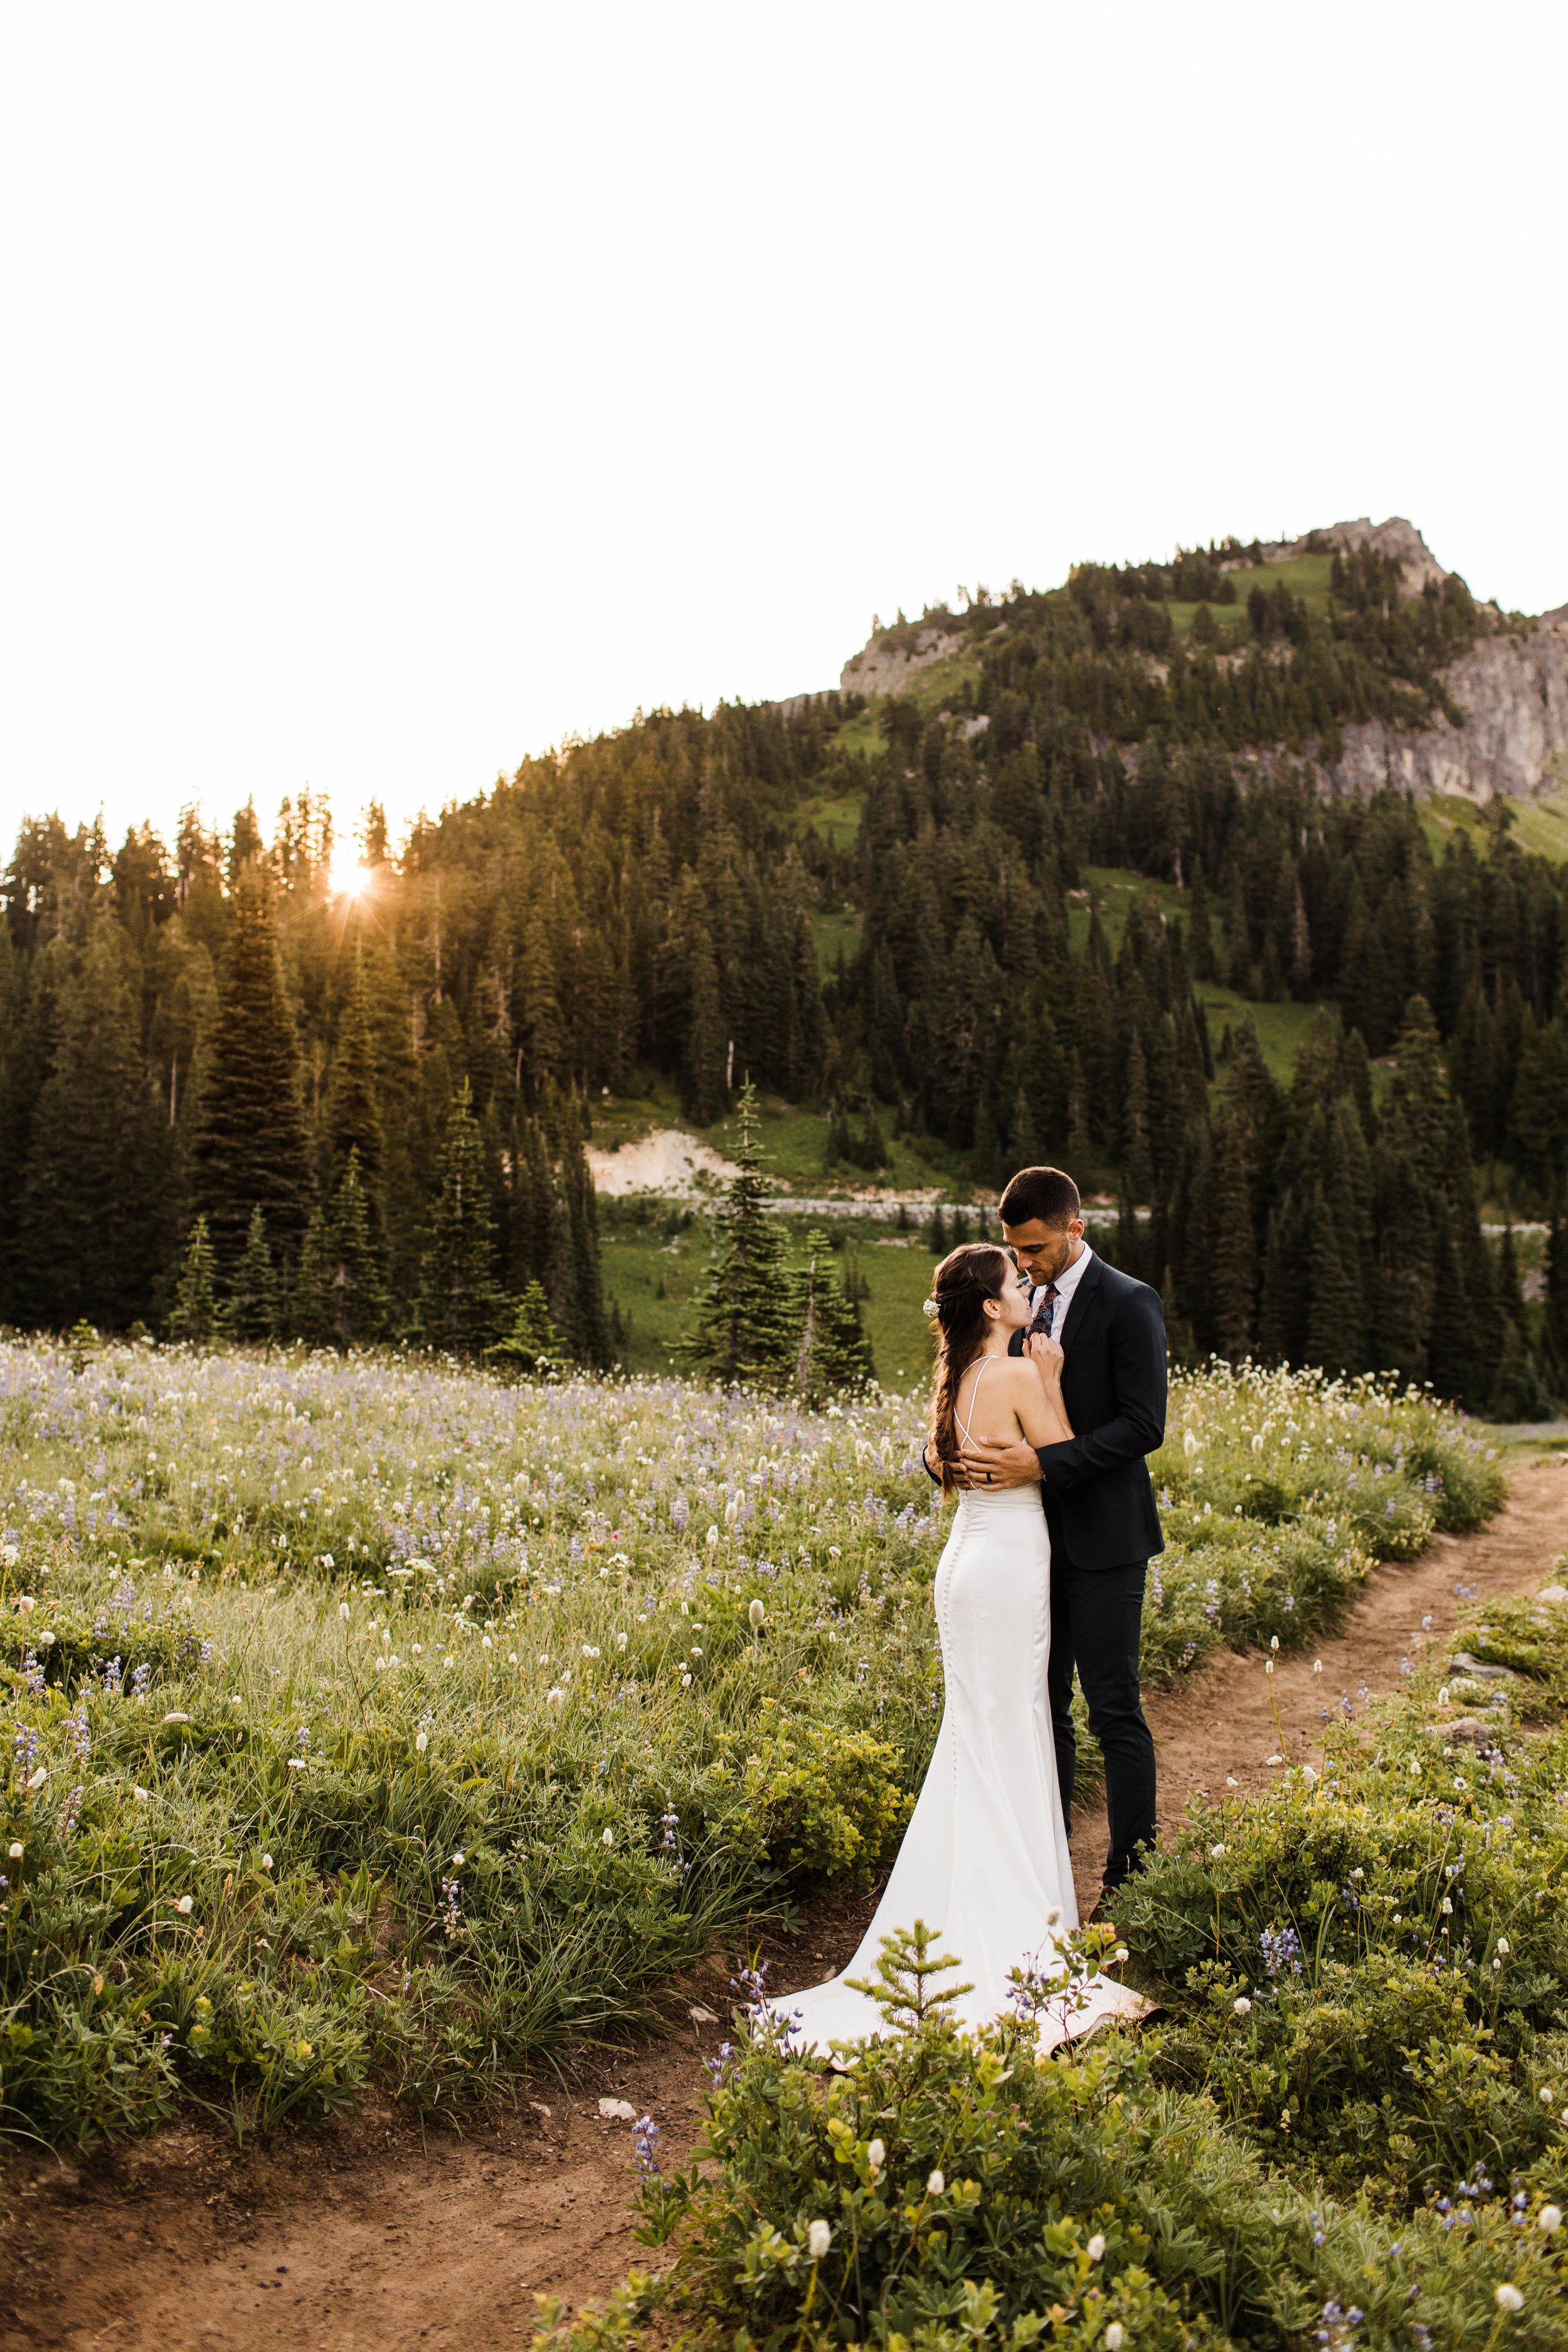 Couple eloping by a lake in Mount Rainier National Park in Washington state | Washington elopement photographers